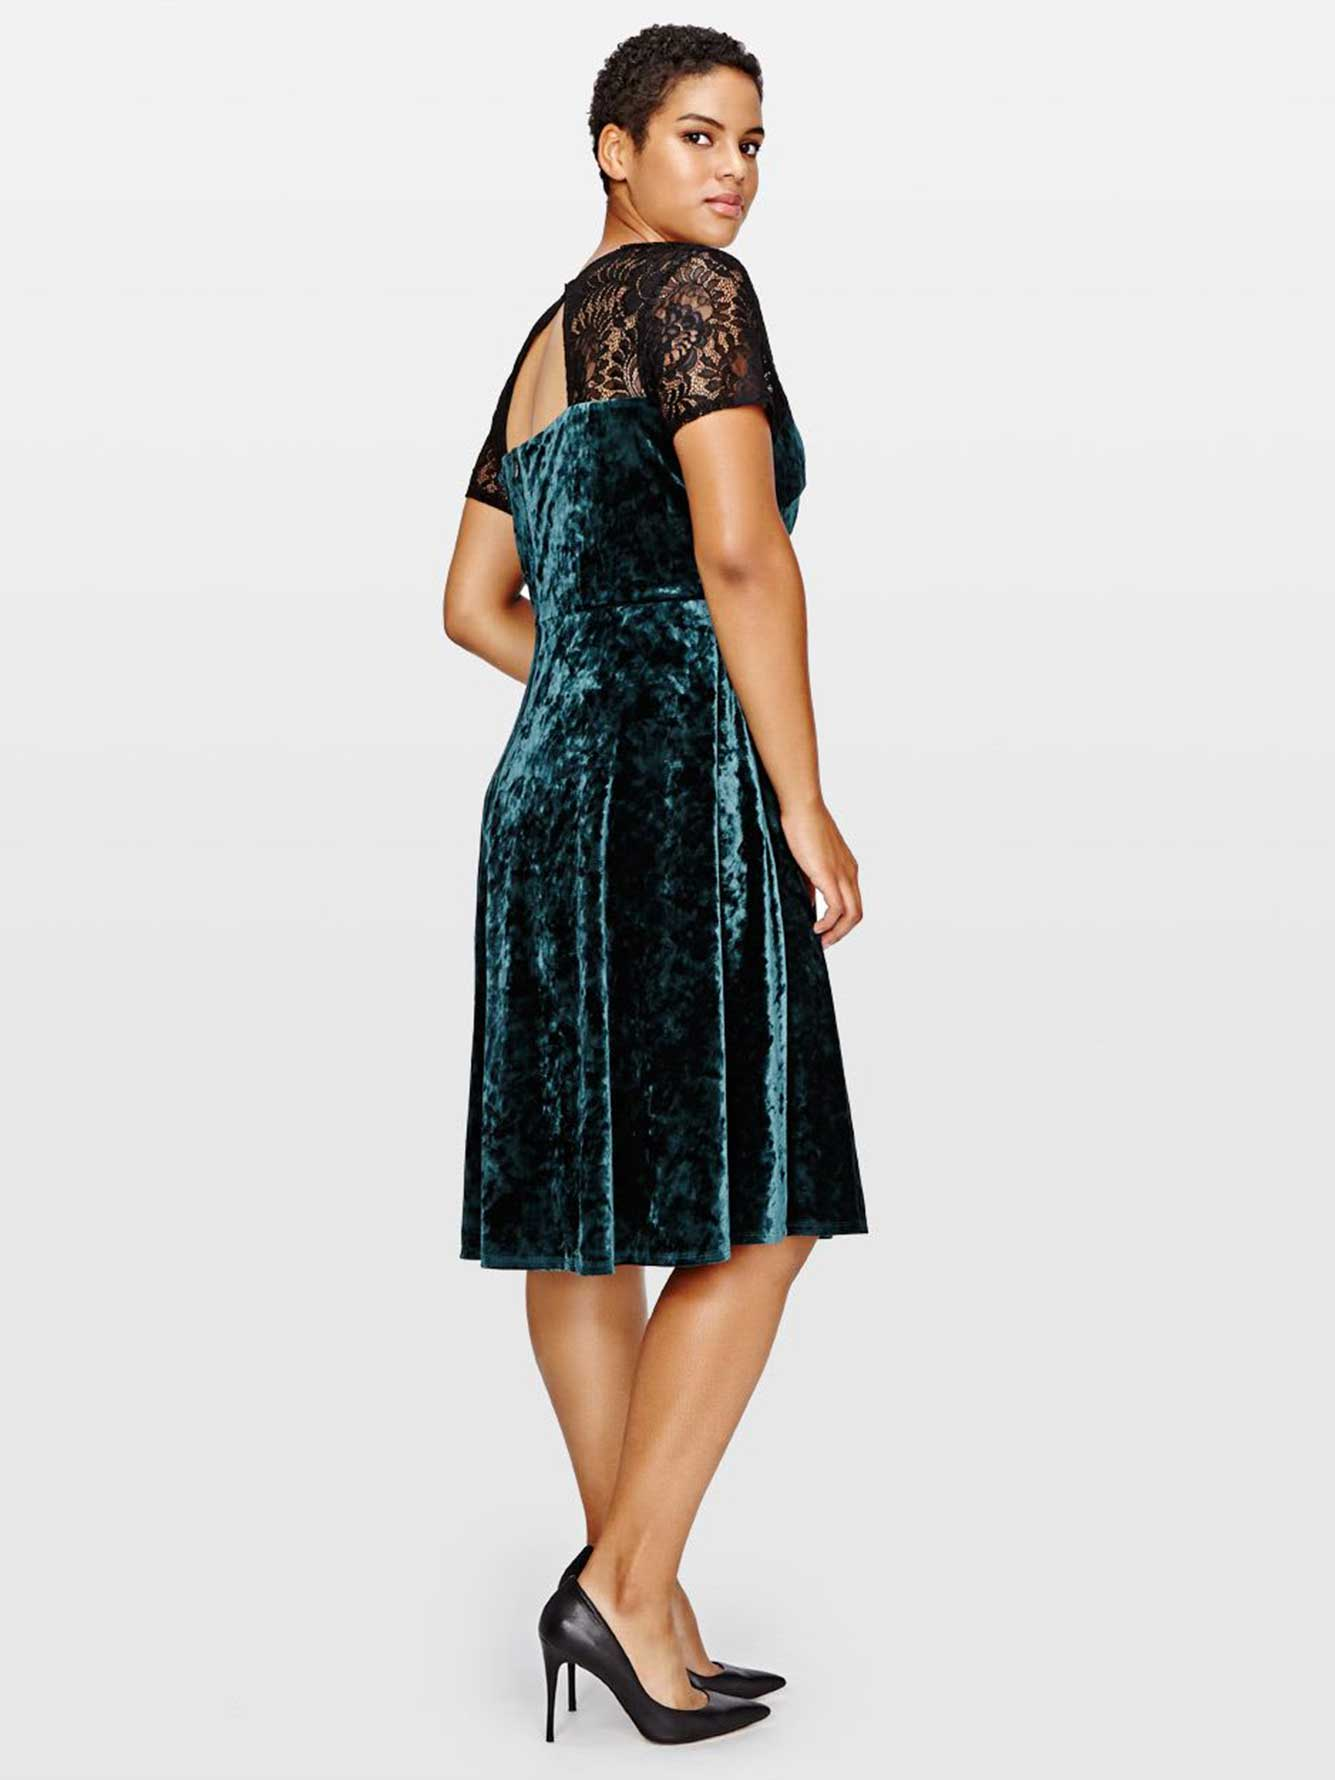 Sangria Crushed Velvet Dress with Lace